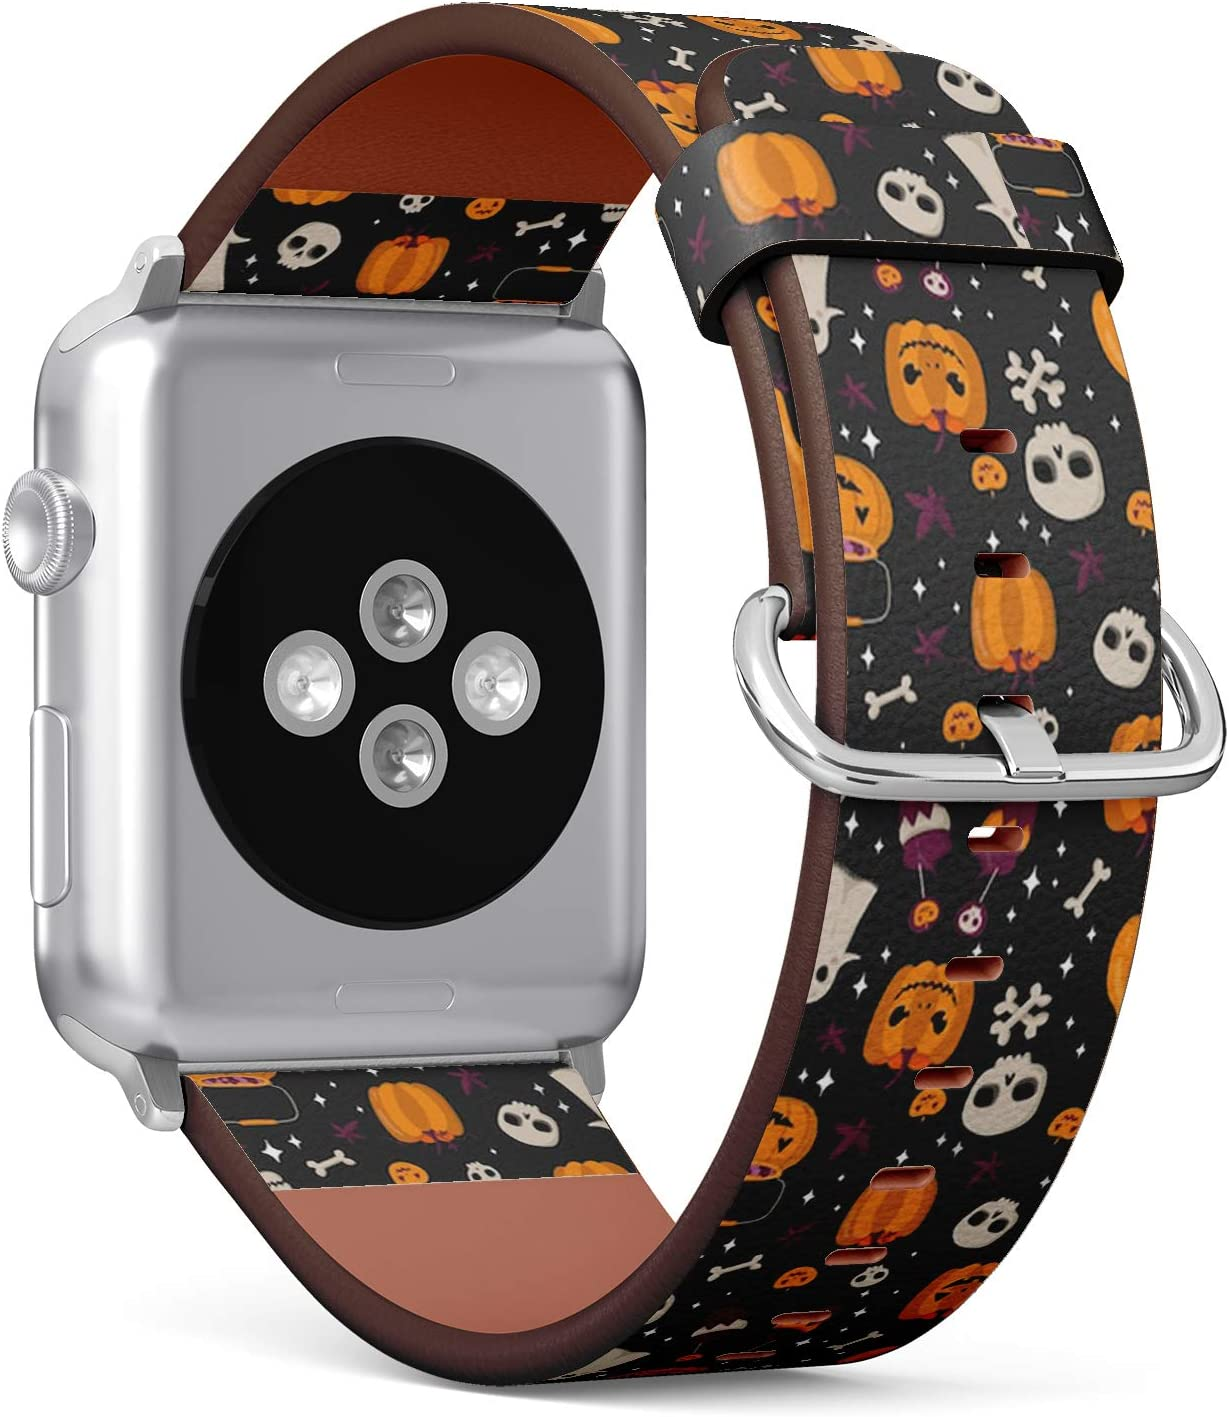 Compatible with Small Apple Watch 38mm & 40mm - (Series 5, 4, 3, 2, 1) Leather Watch Wrist Band Strap Bracelet with Stainless Steel Clasp and Adapters (Halloween Pumpkin)